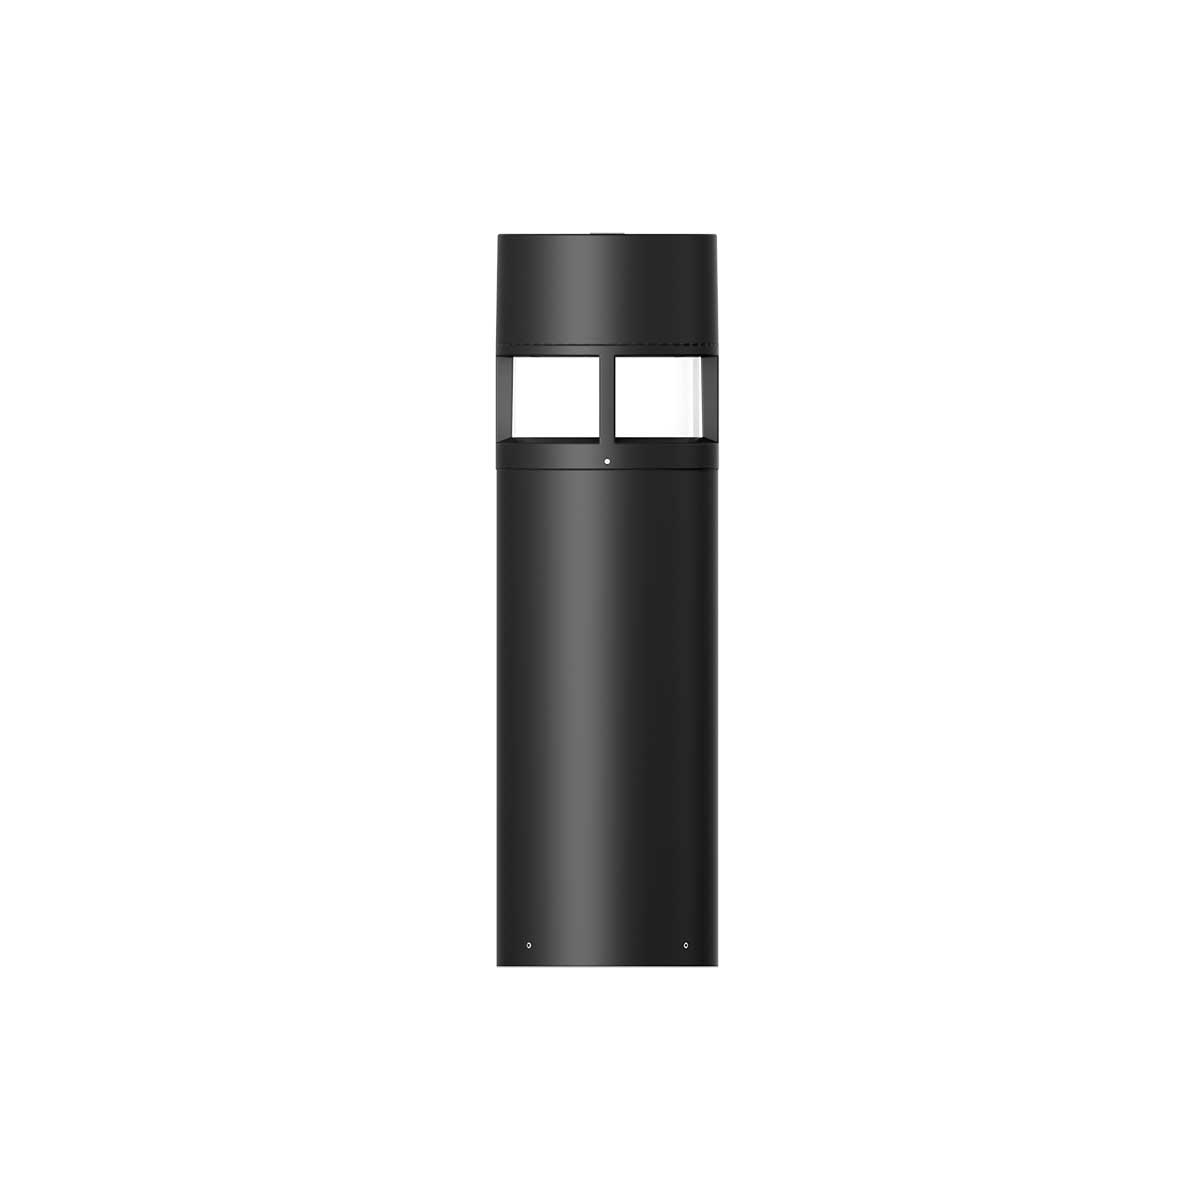 Columbus medium bollard prod 1200x1200